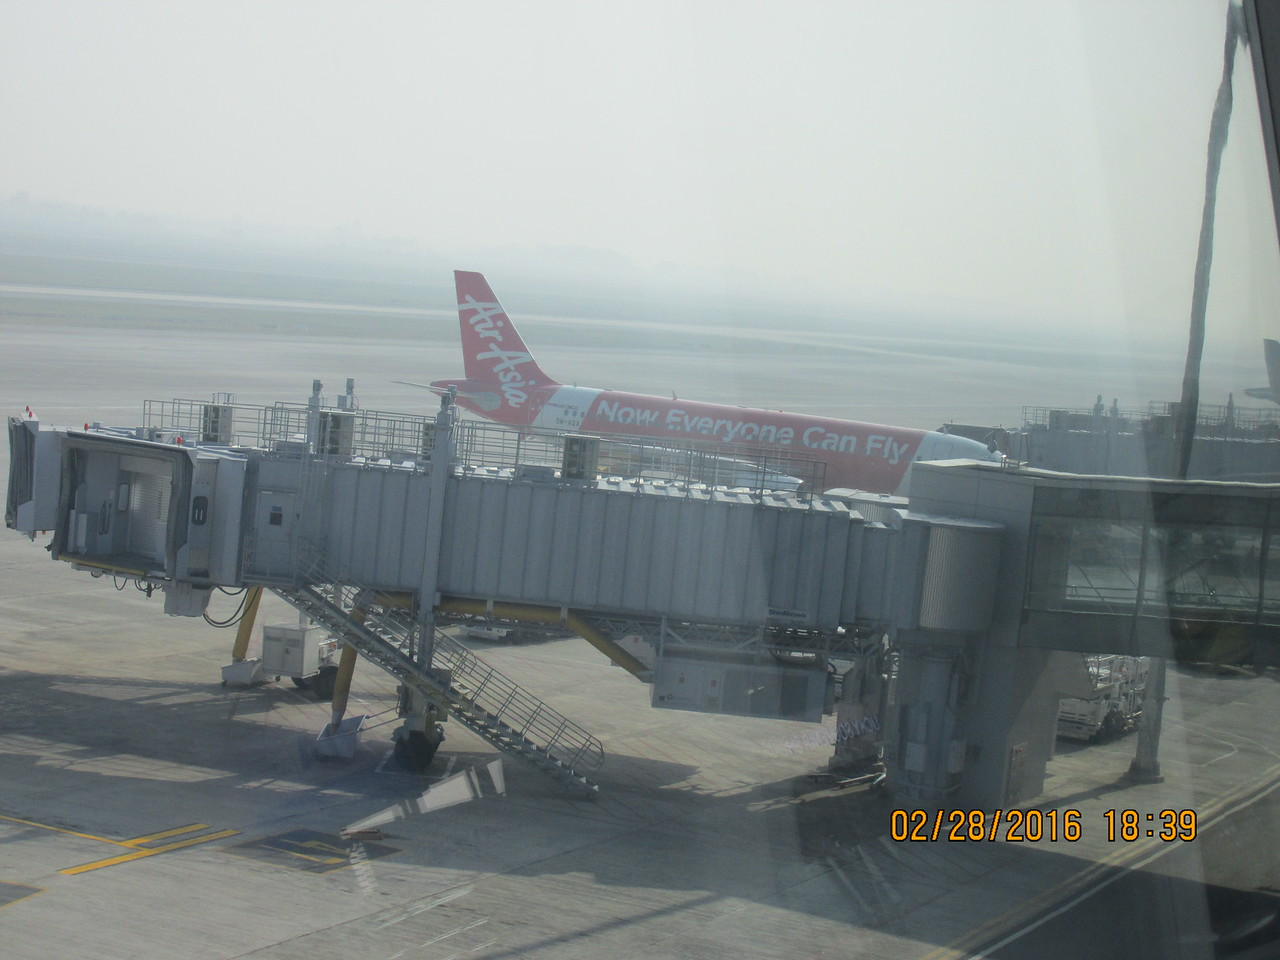 0098 - AirAsia Airplane from Malaysia at Hanoi Airport - Hanoi Vietnam - Date Correct but Time on Pic is Wrong